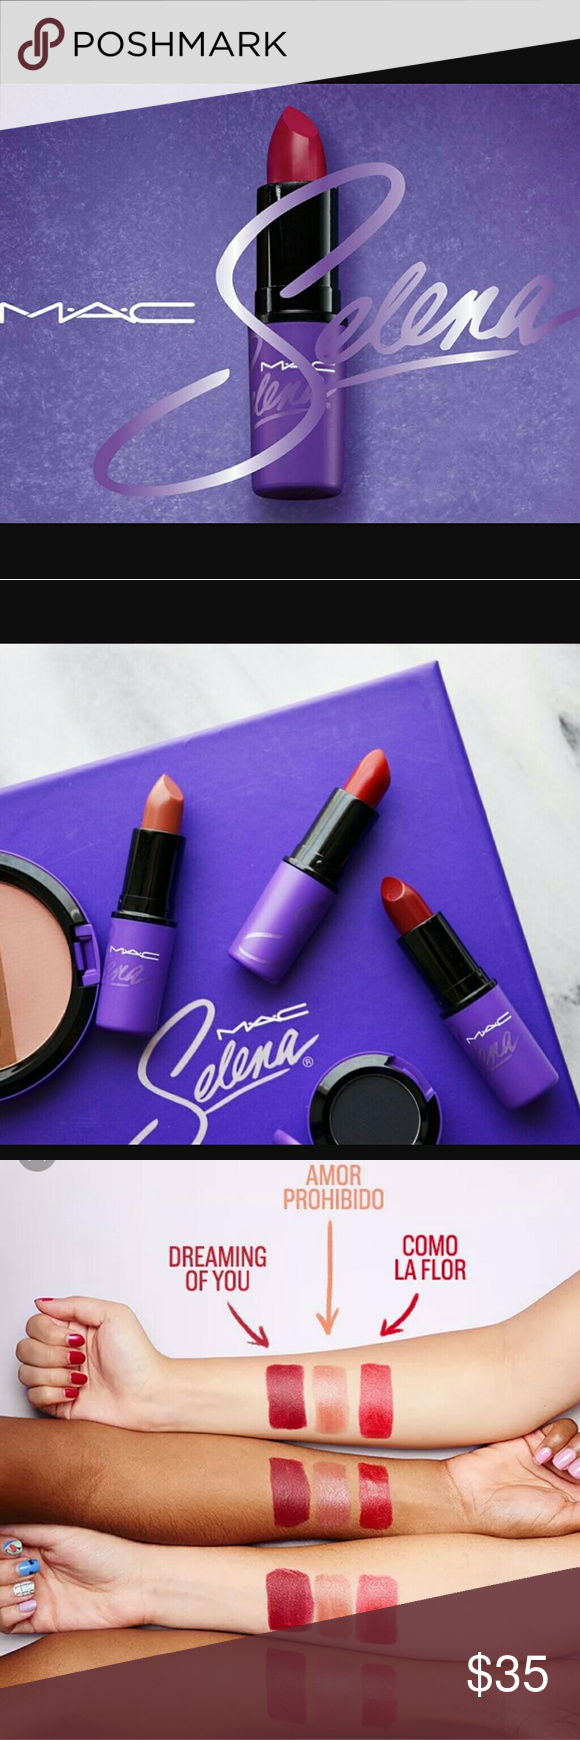 Mac Selena lipsticks Both brand new in box. Instantly sold out. Colors i have are dreaming of you and amor prohibido. Price is each, not both. 100% authentic MAC Cosmetics Makeup Lipstick